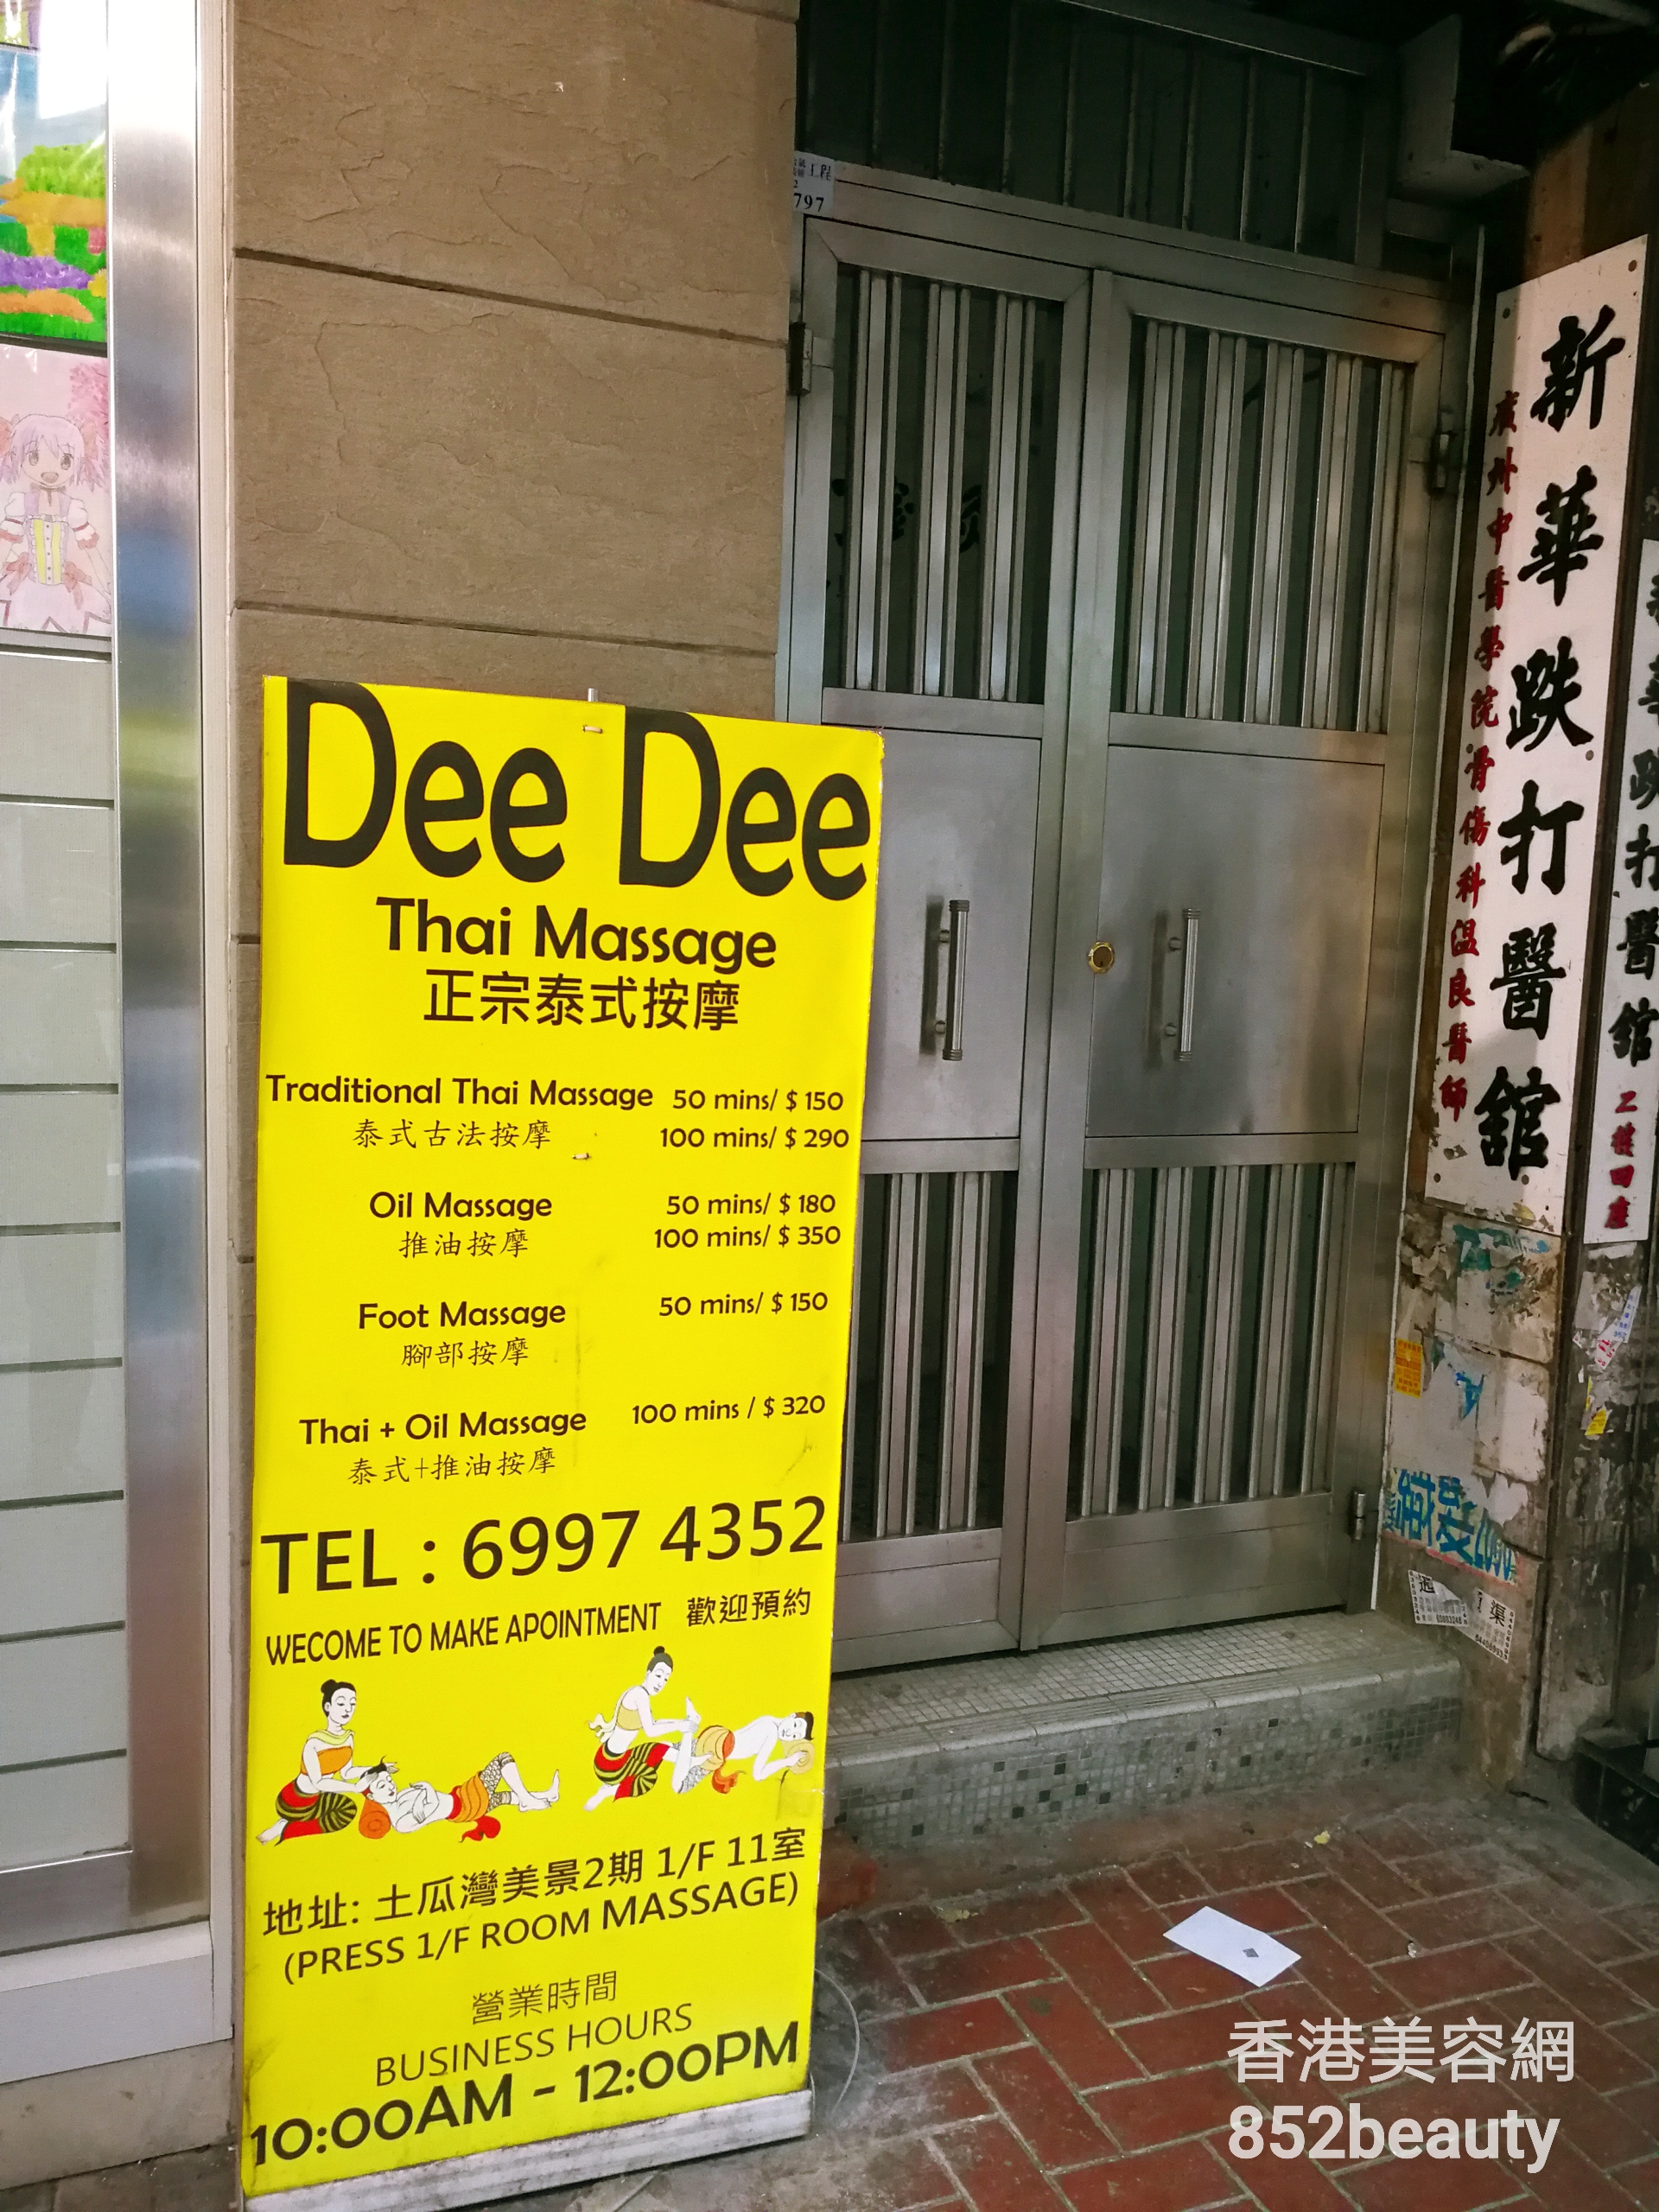 美容院 Beauty Salon: Dee Dee Thai Massage 正宗泰式按摩